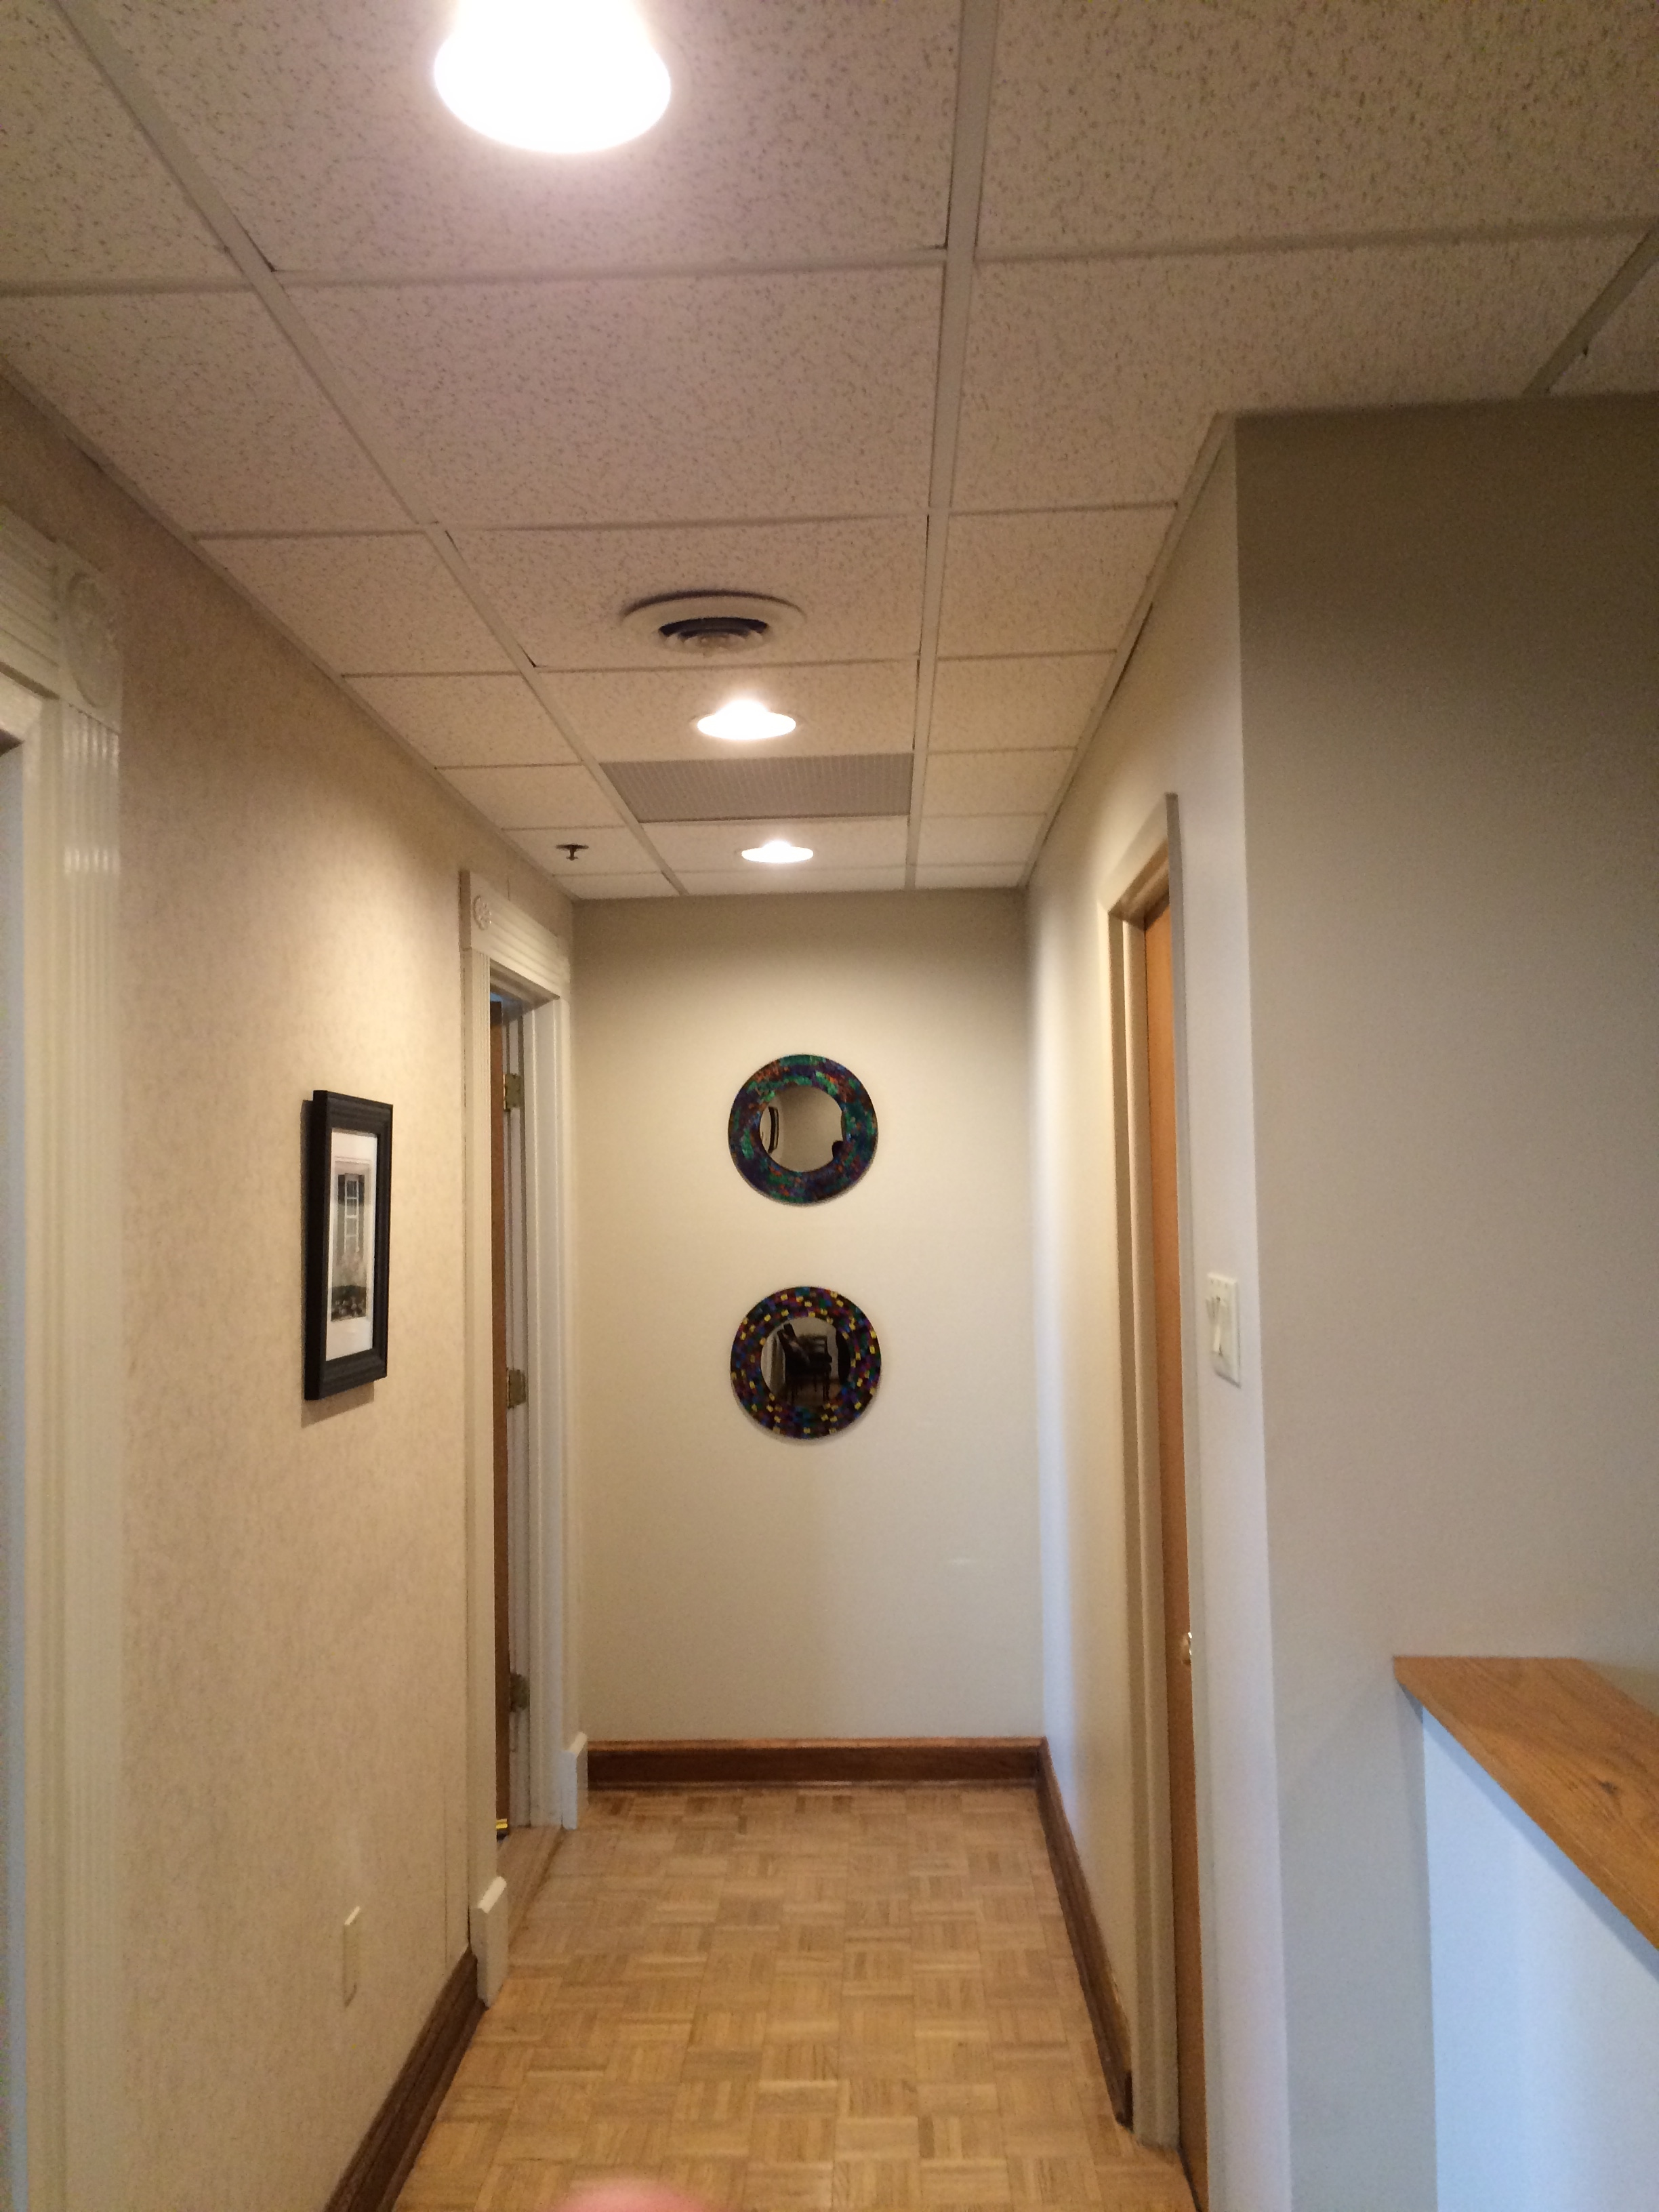 OCD CBT Mindful Stress & Anxiety Management Center of Philadelphia image 8